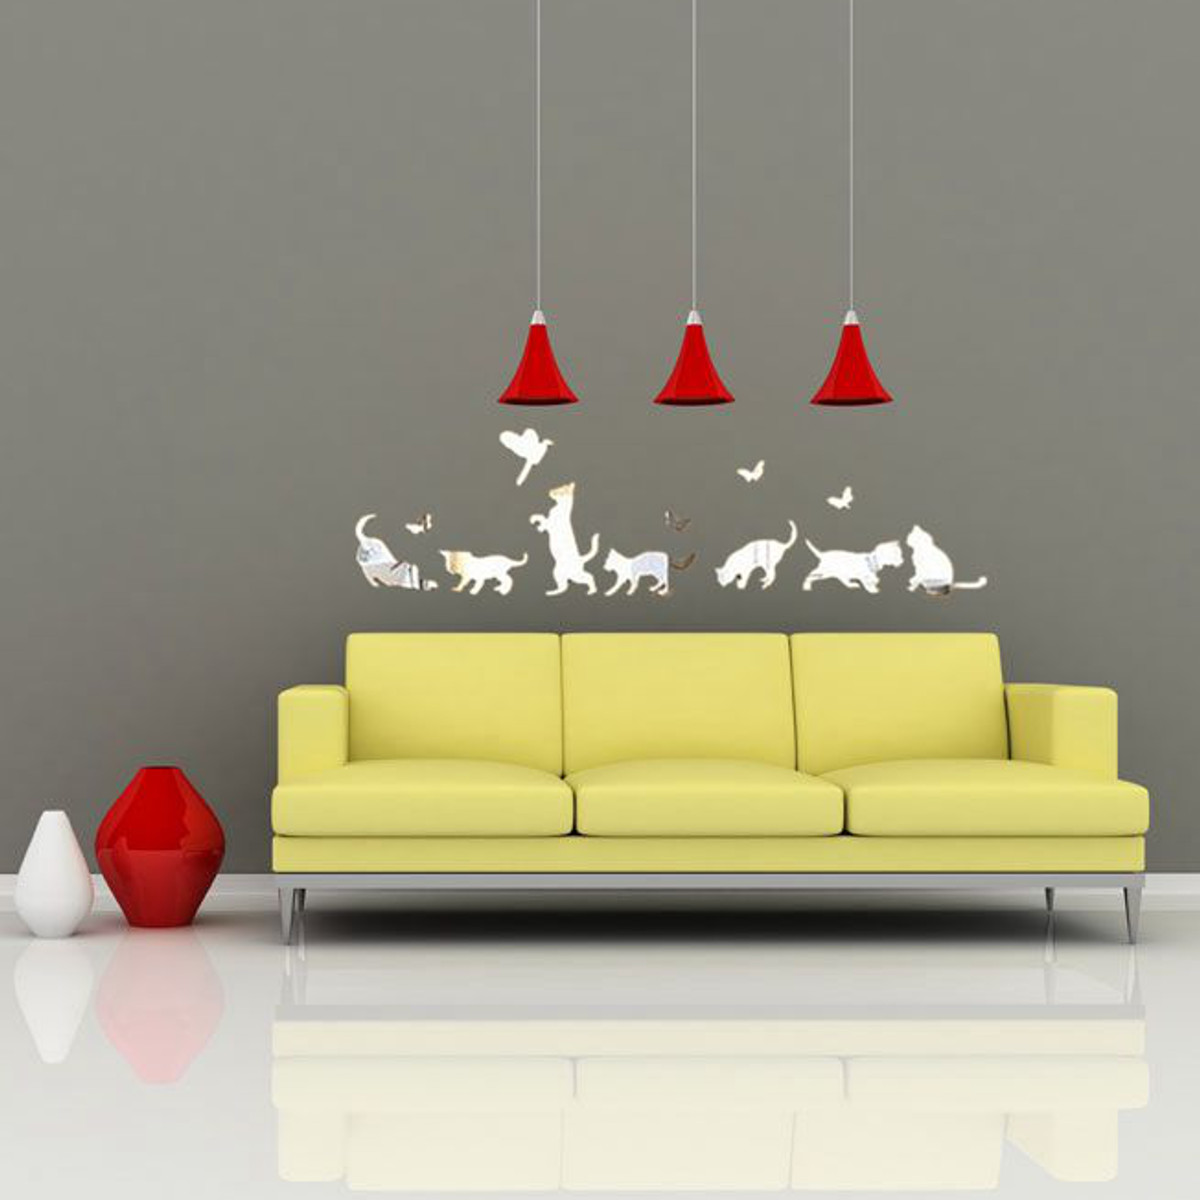 Modern Vinyl Wall Art Cats Dogs Modern Acrylic Plastic Mirror Wall Home Decal